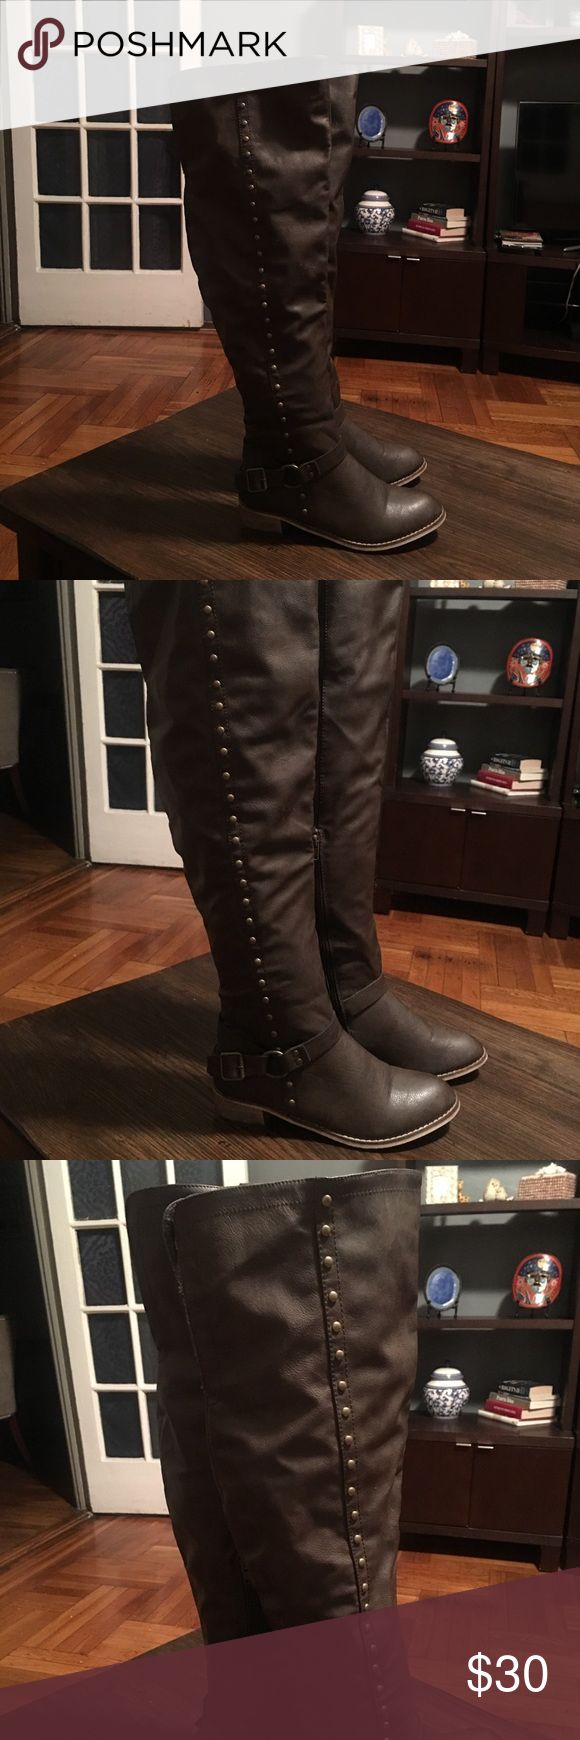 Women's over the knee boots These boots are in like new condition. Used only once above the knee. They are beautiful and look great with leggings, tights or Jeans. Size 9 Shoes Over the Knee Boots